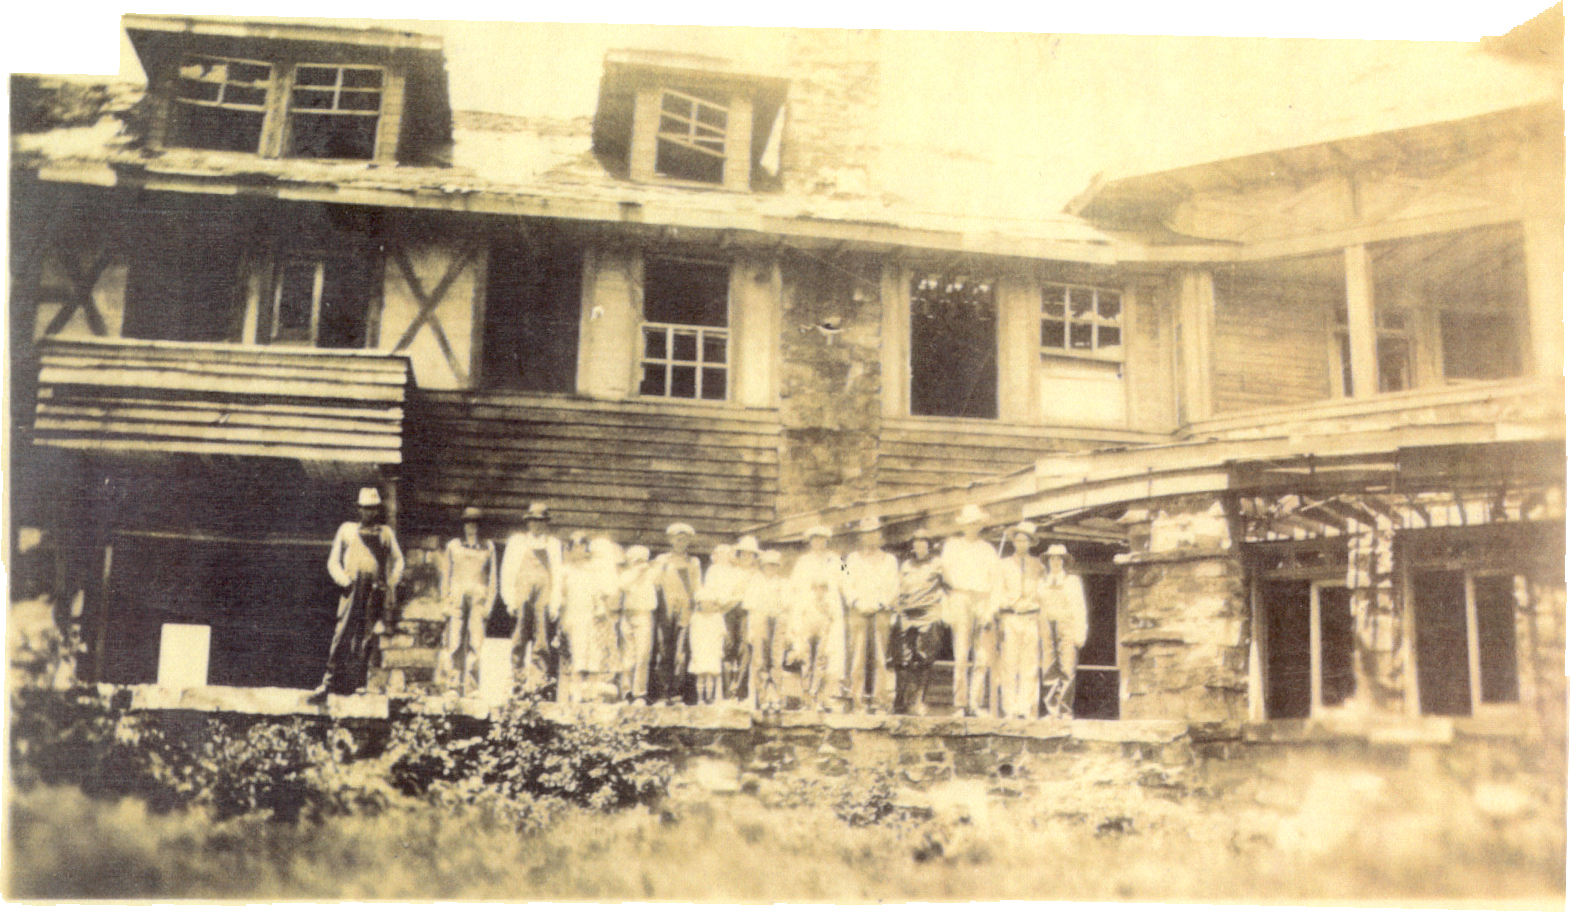 The Queen Wilhelmina Lodge has been a popular photo back drop, no matter it's condition at the time.